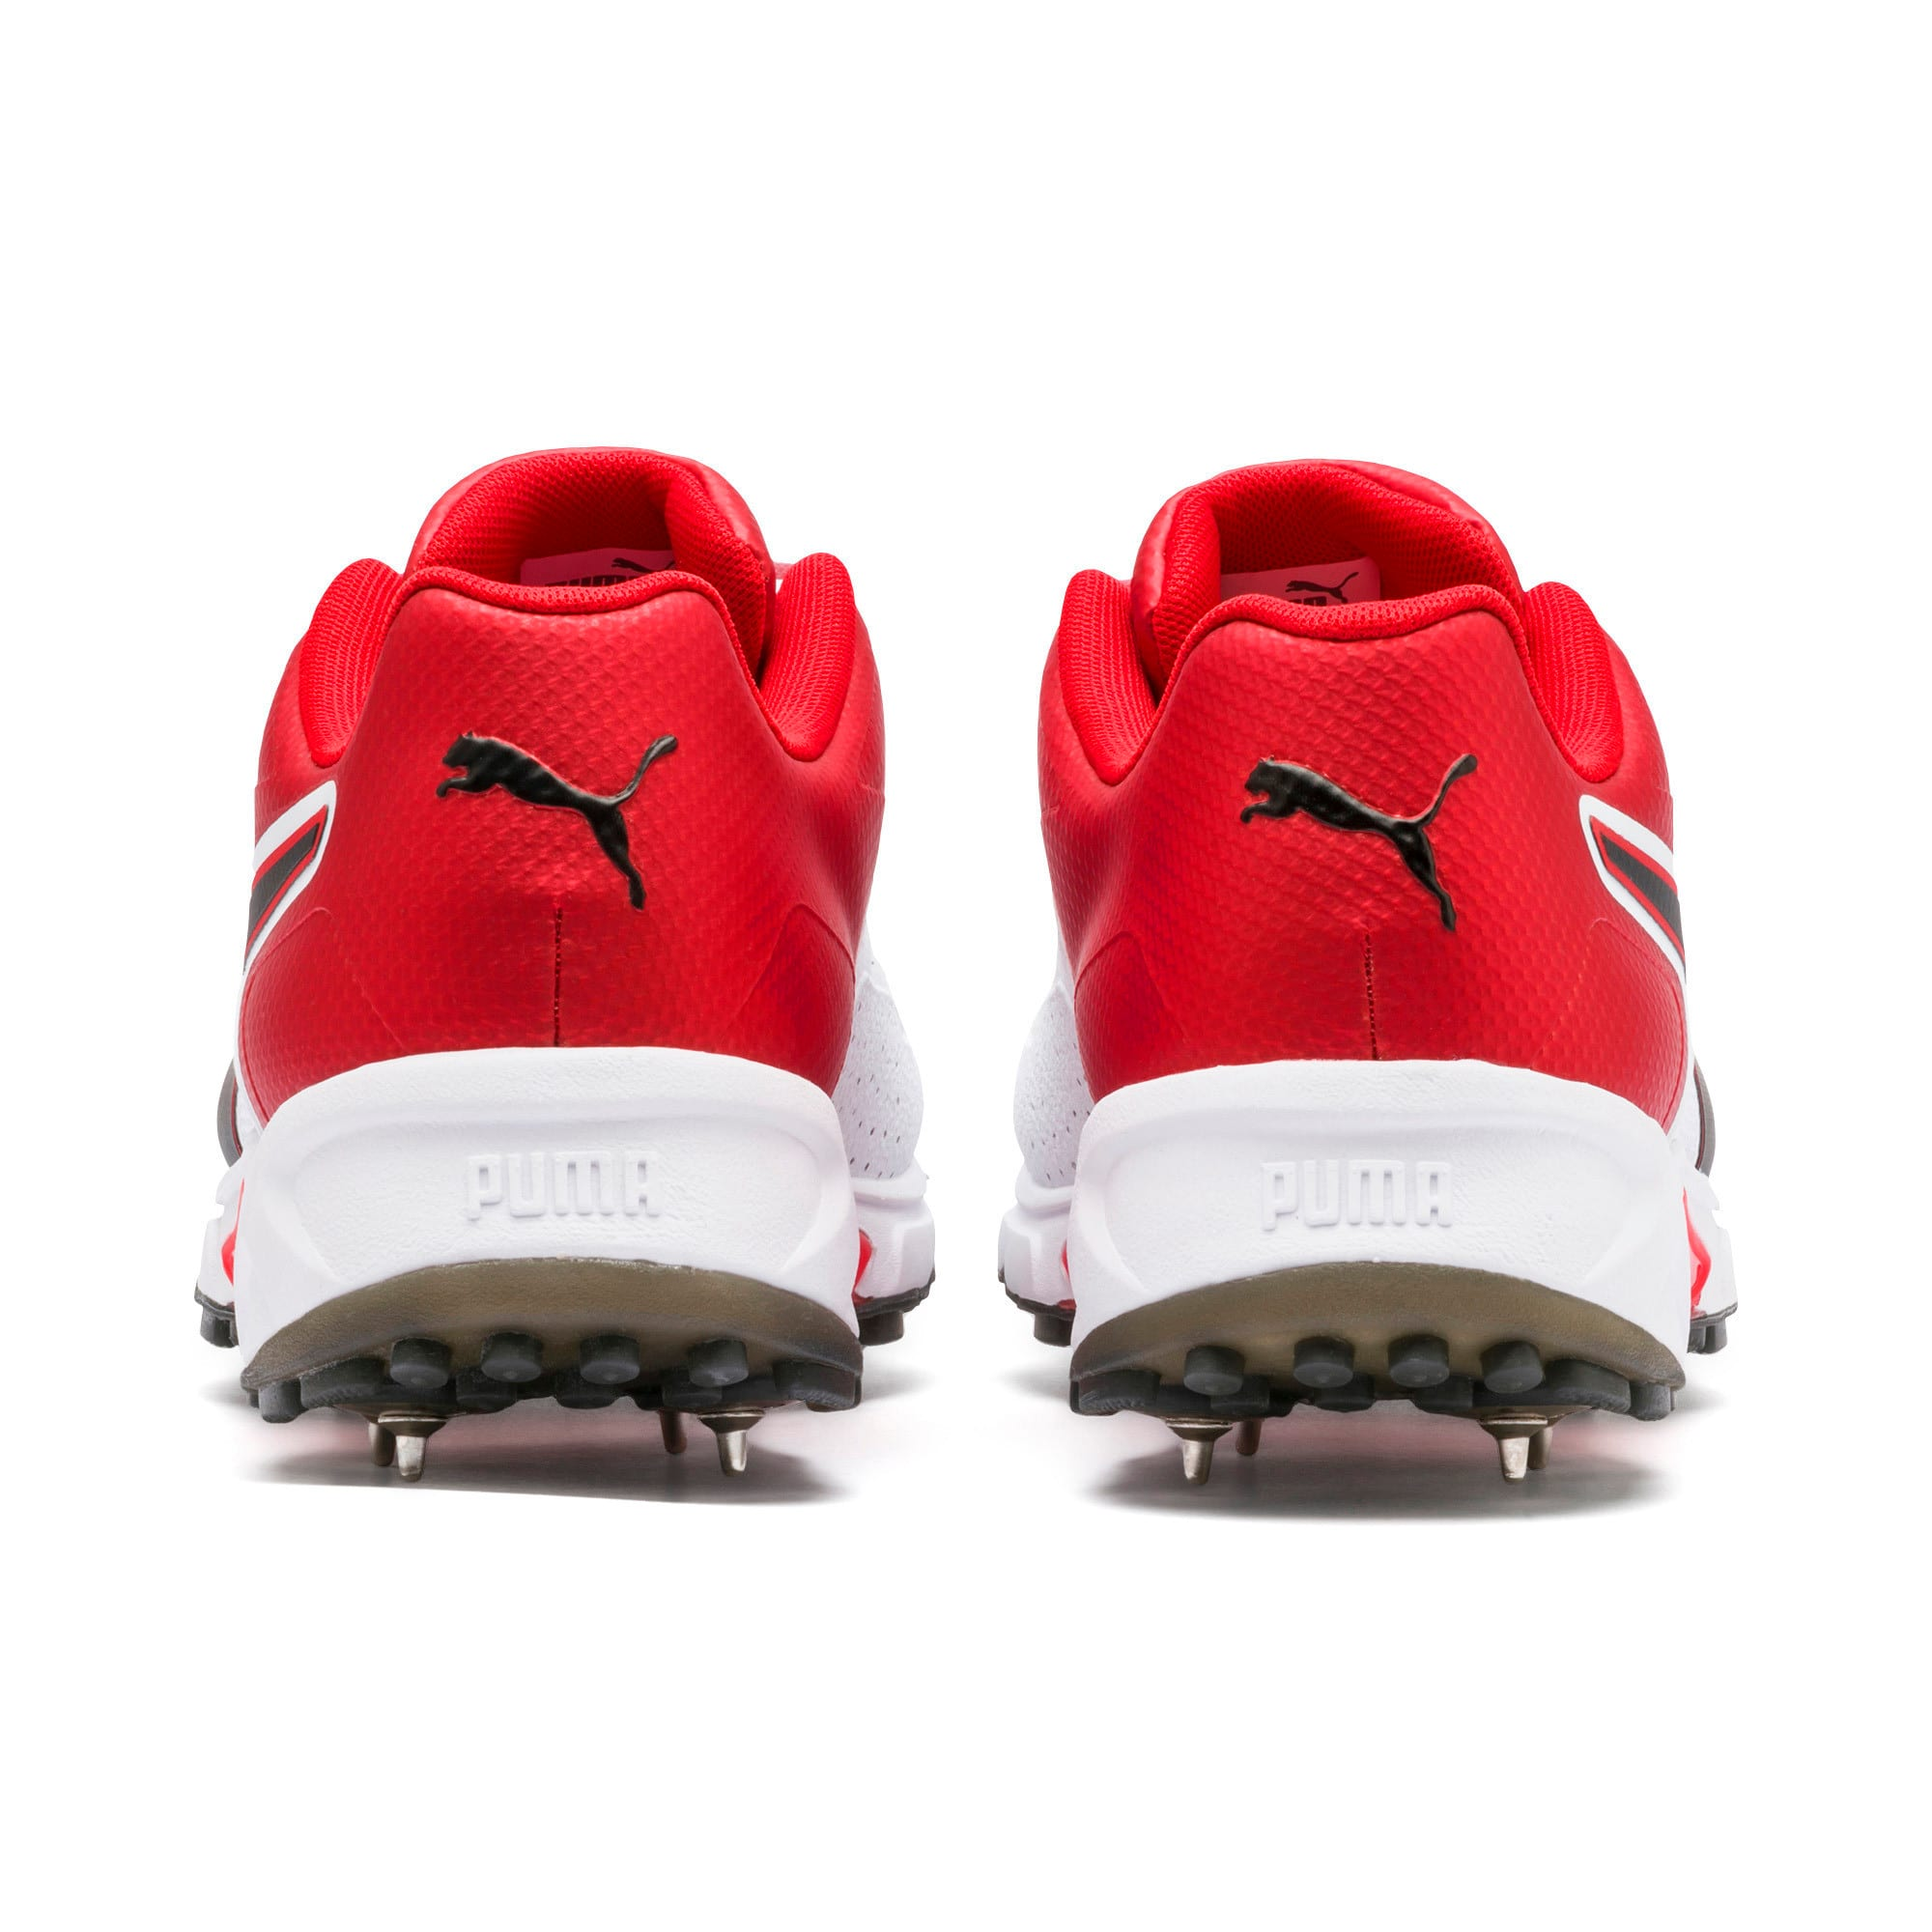 Thumbnail 3 of PUMA Spike 19.1 Men's Cricket Shoes, White-Black-High Risk Red, medium-IND